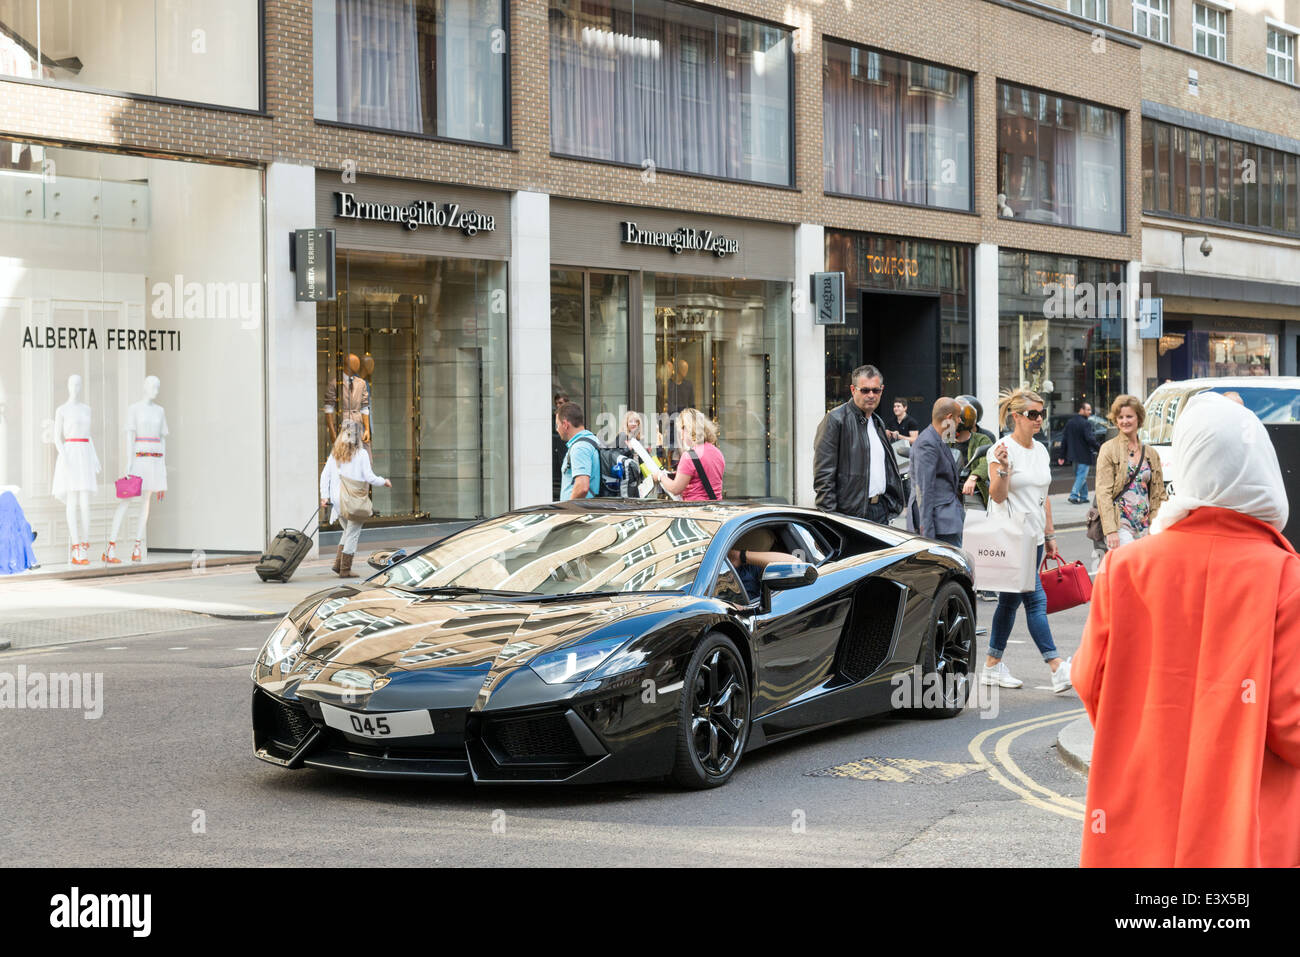 Lamborghini Supercar Driving Down Sloane Street London England